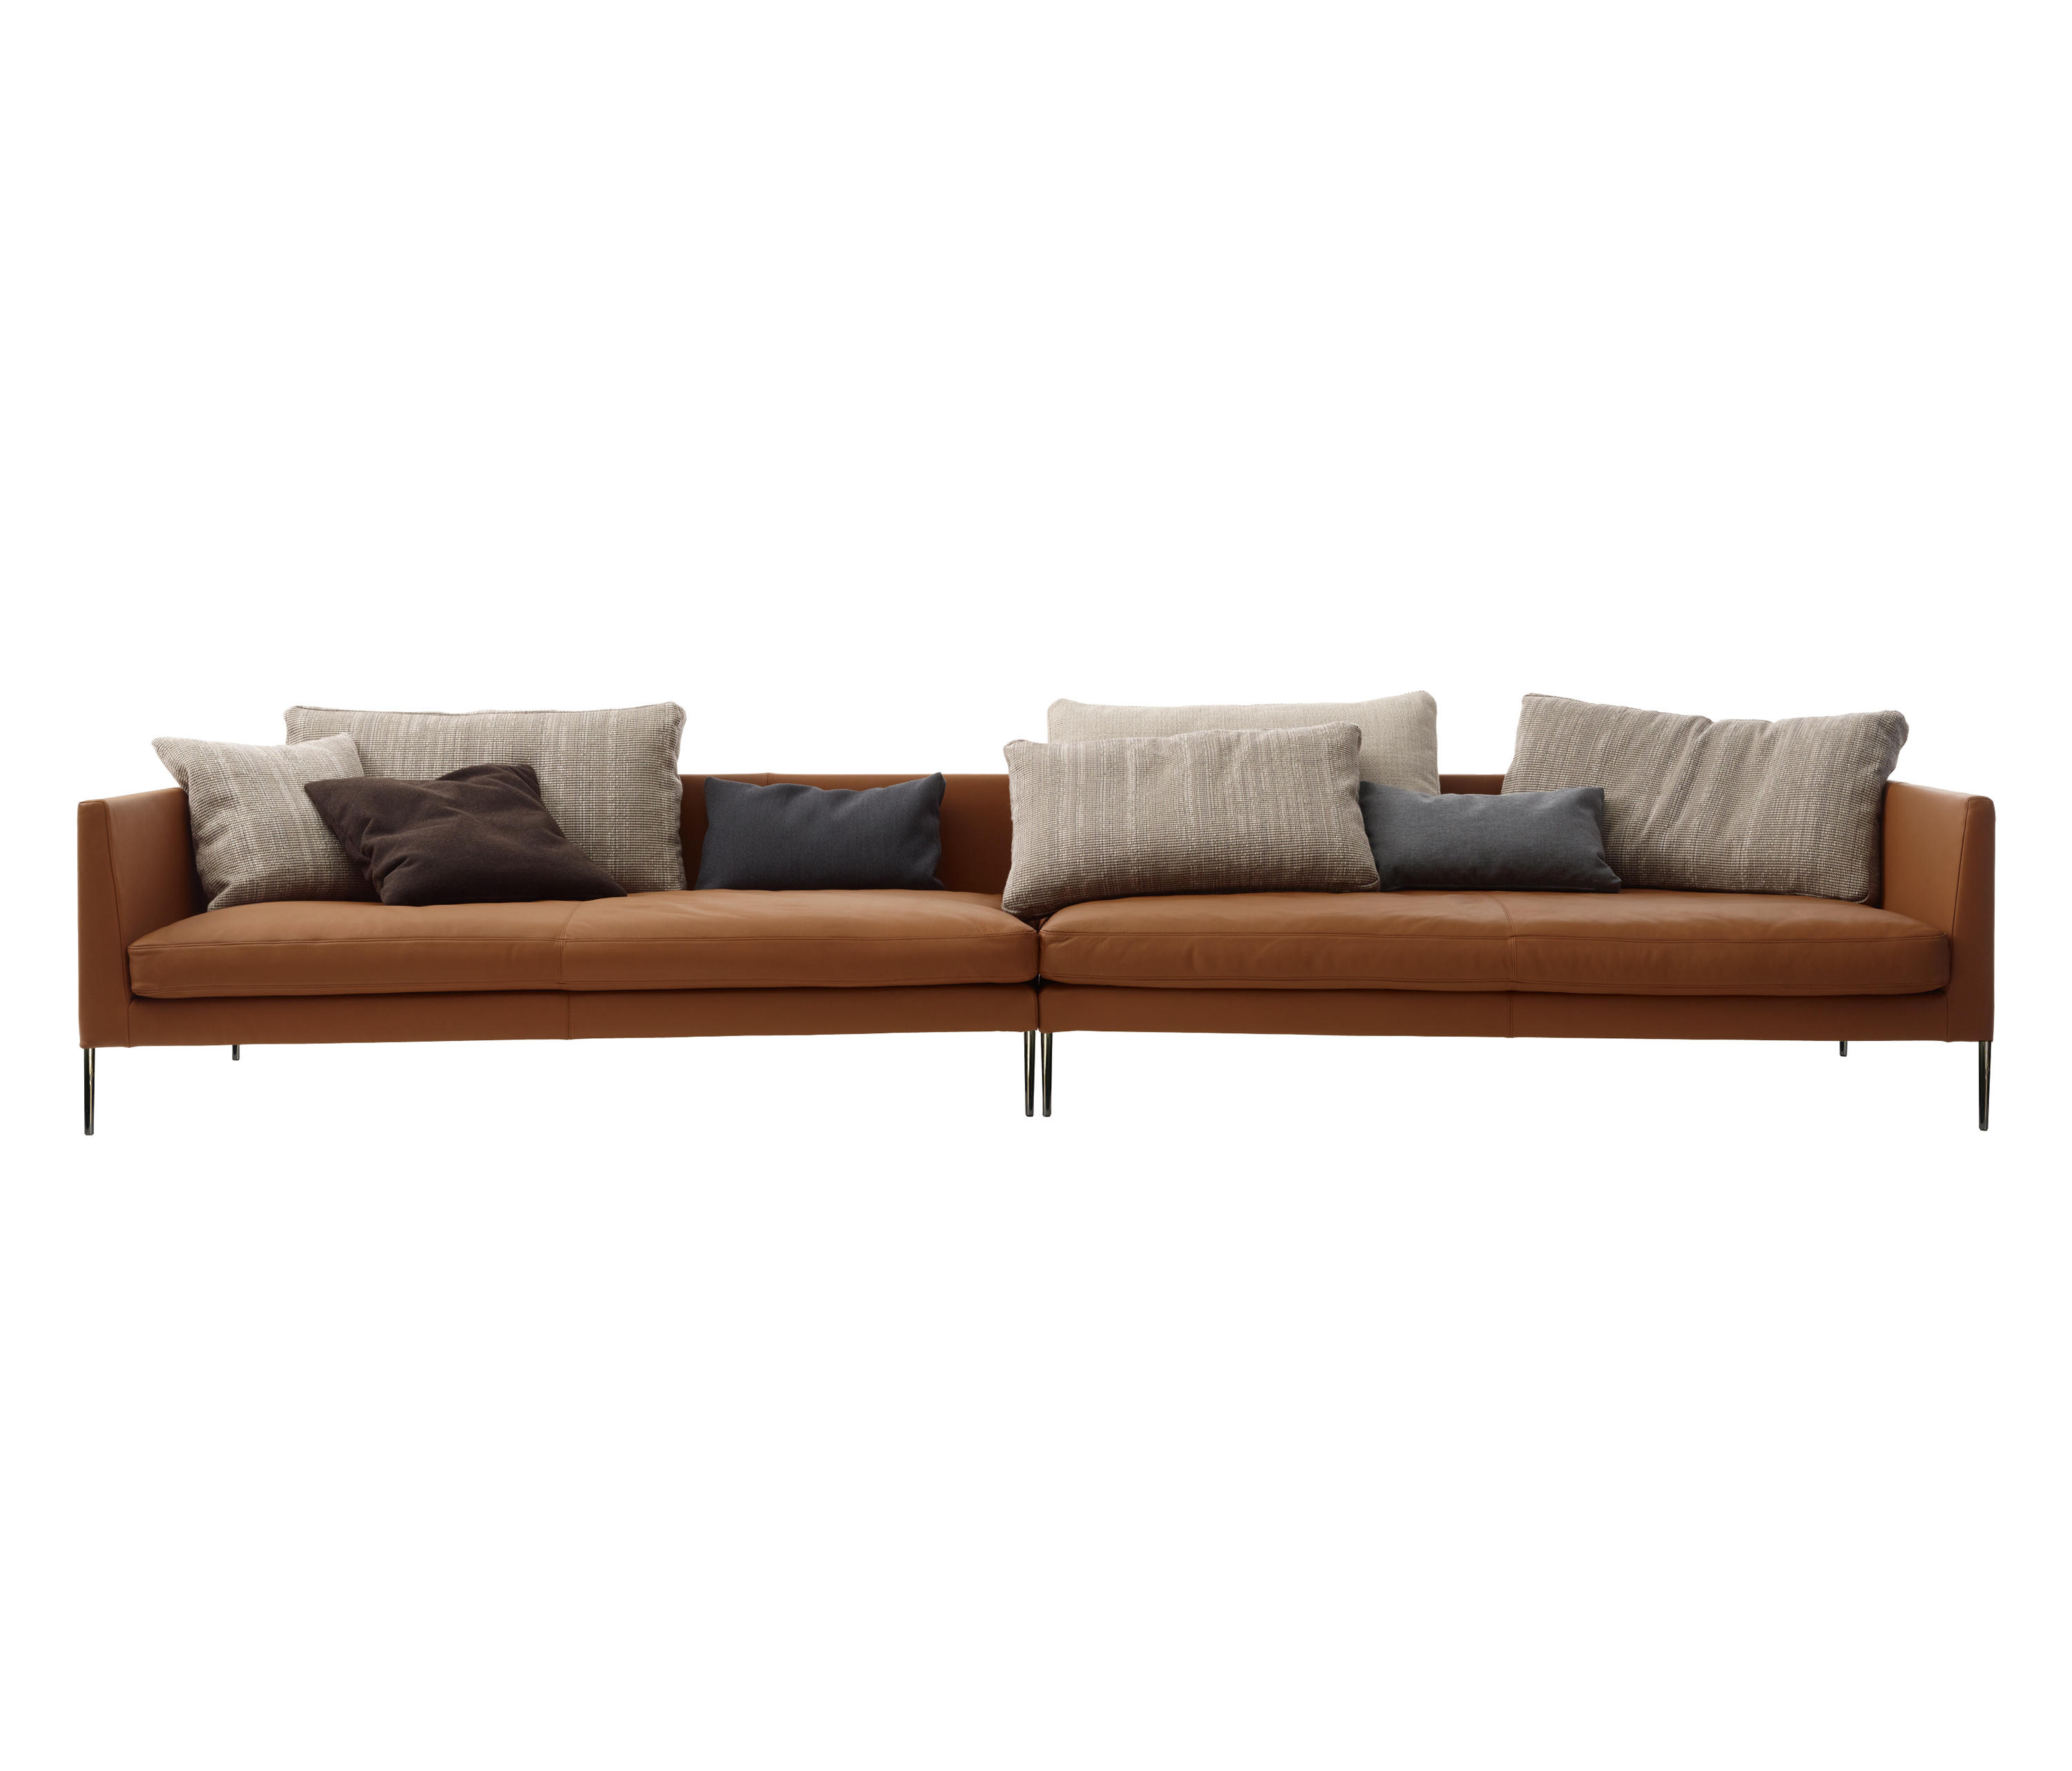 PILOTIS SOFA Lounge sofas from COR